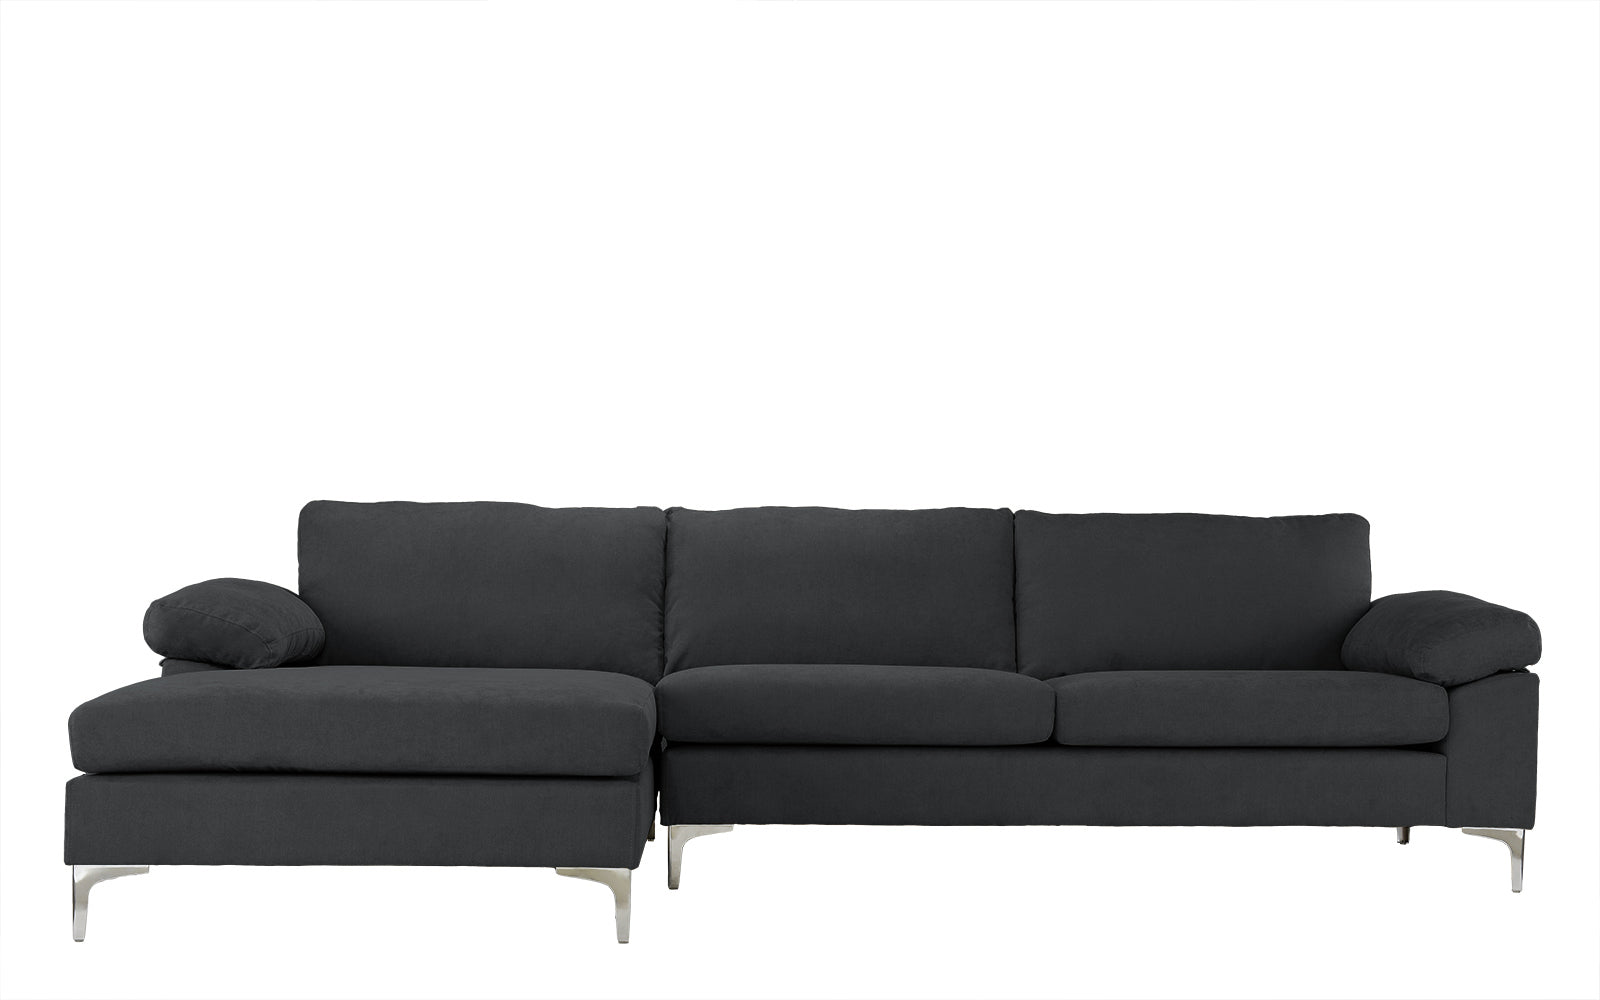 Linen Large Sectional Sofa Image